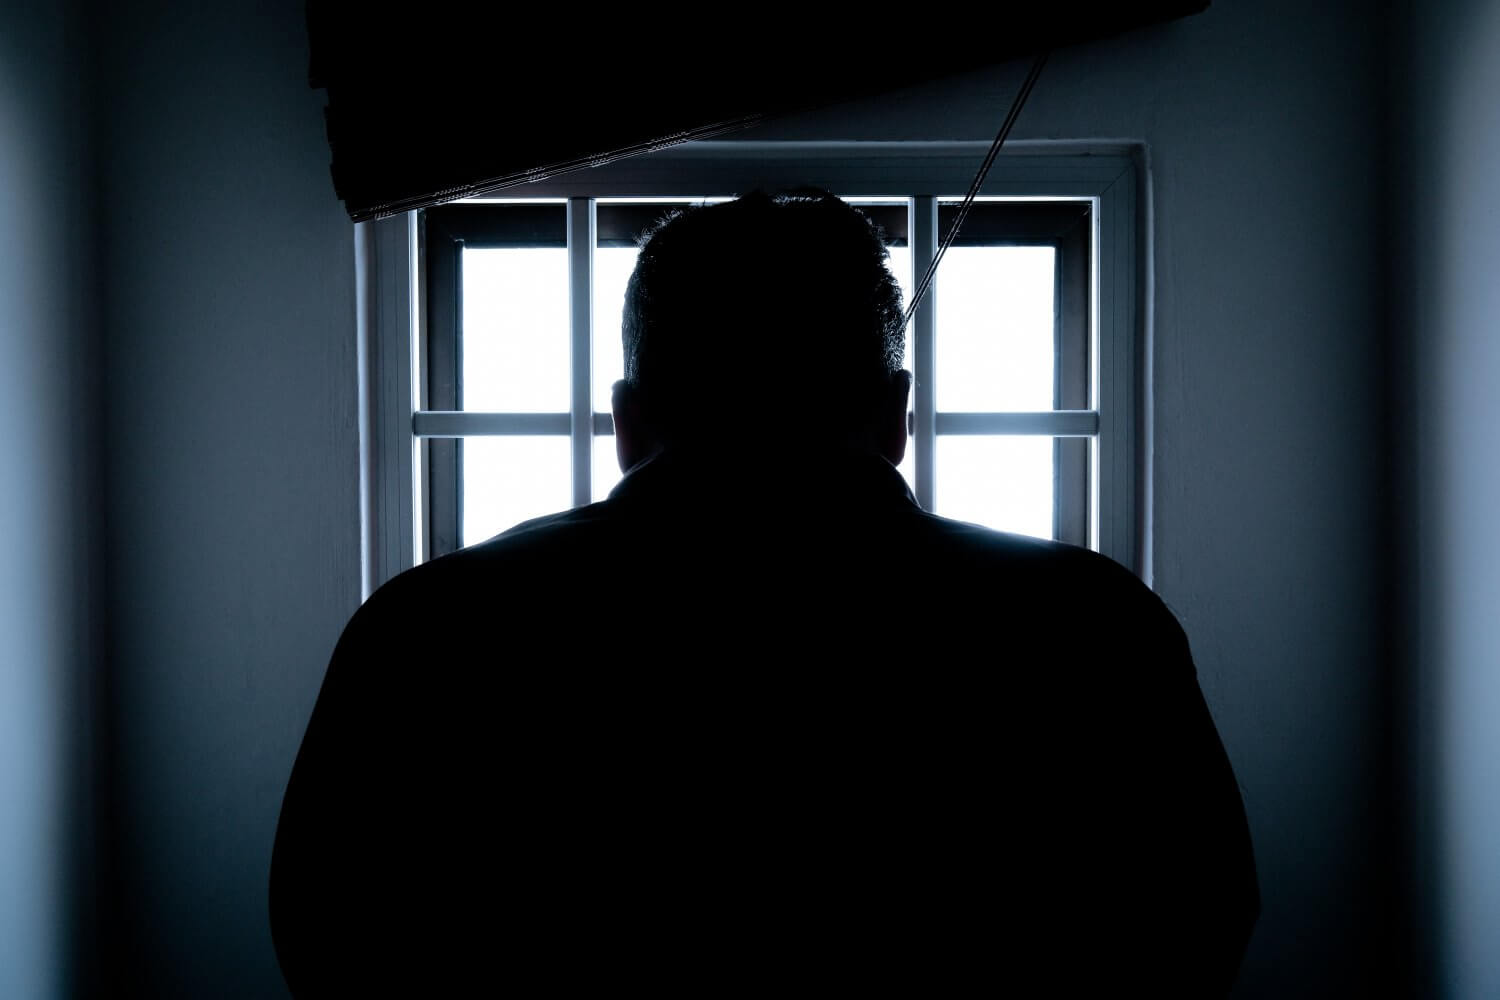 A man standing in a dark room